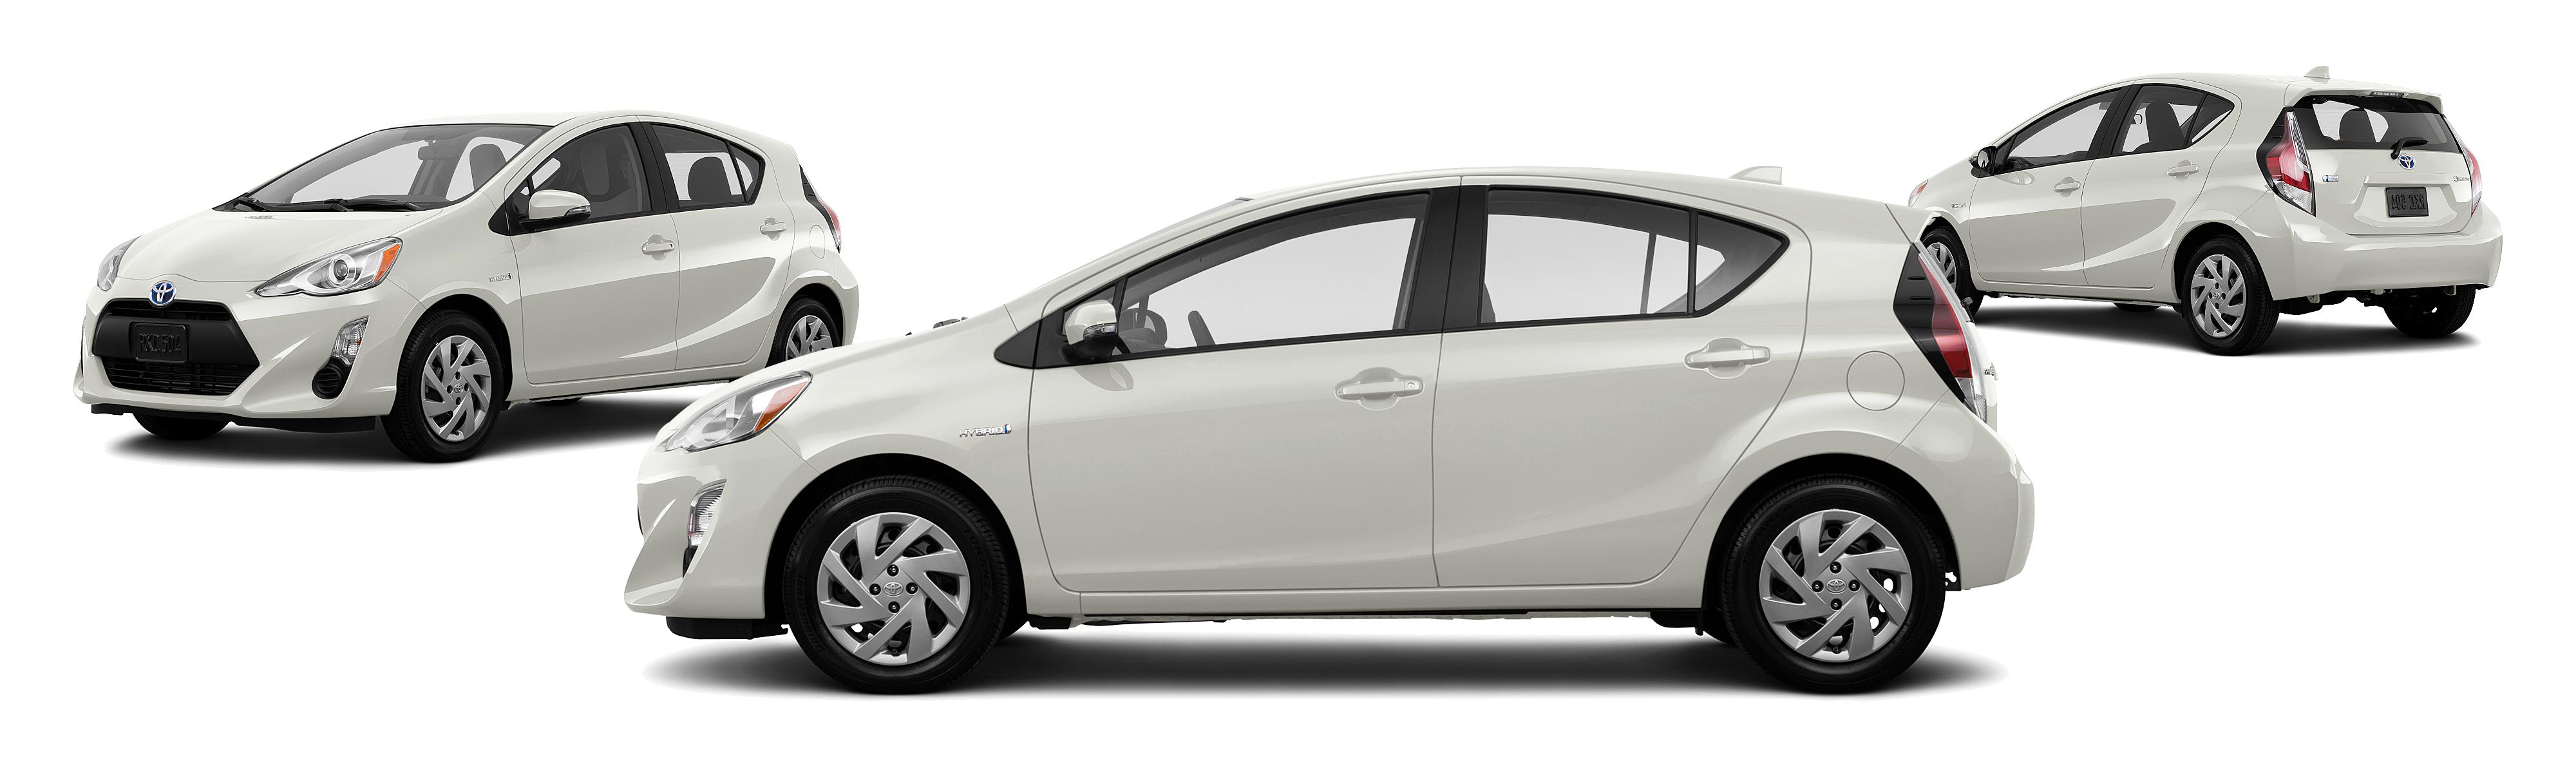 coupe hatchback toyota photos reviews photo c price features prius one